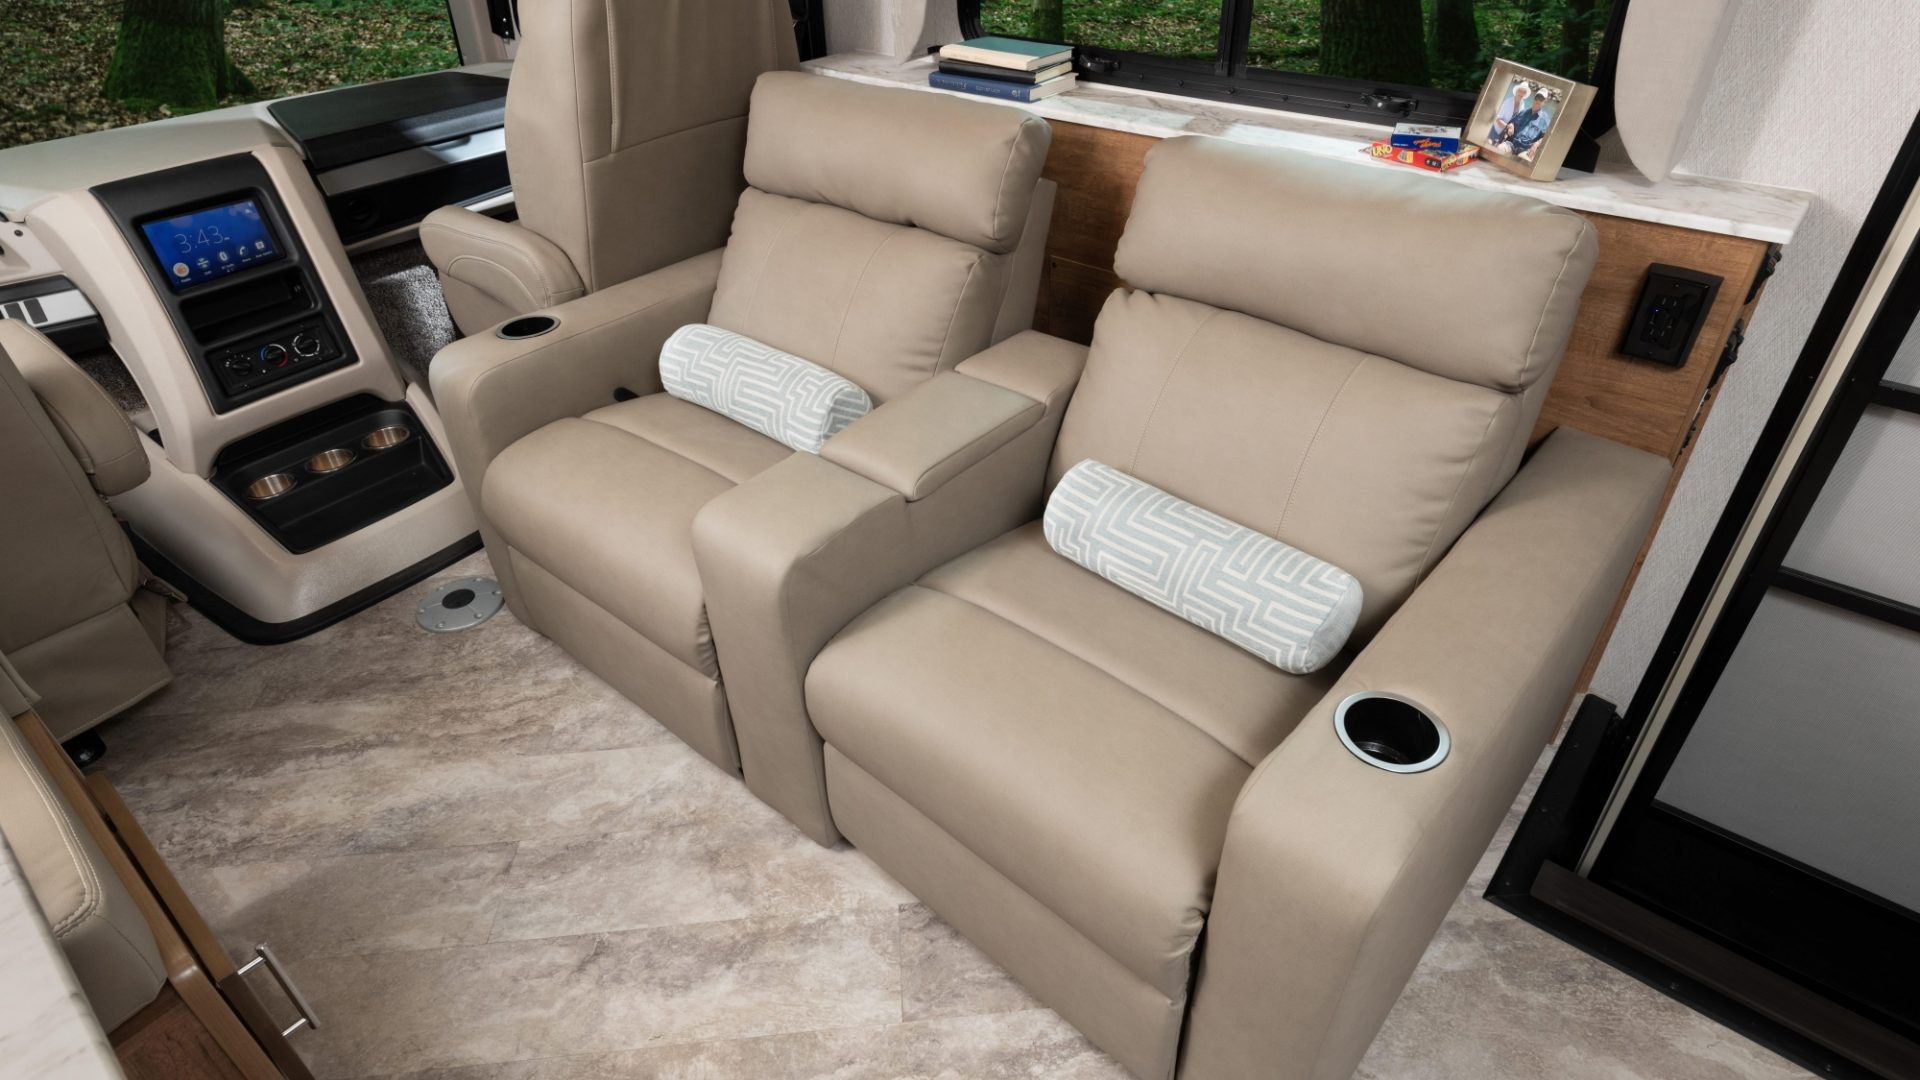 7 theatreseat INTERIOR Fortis 33 HB Outerbanks Eng Chest MY22 7574closed